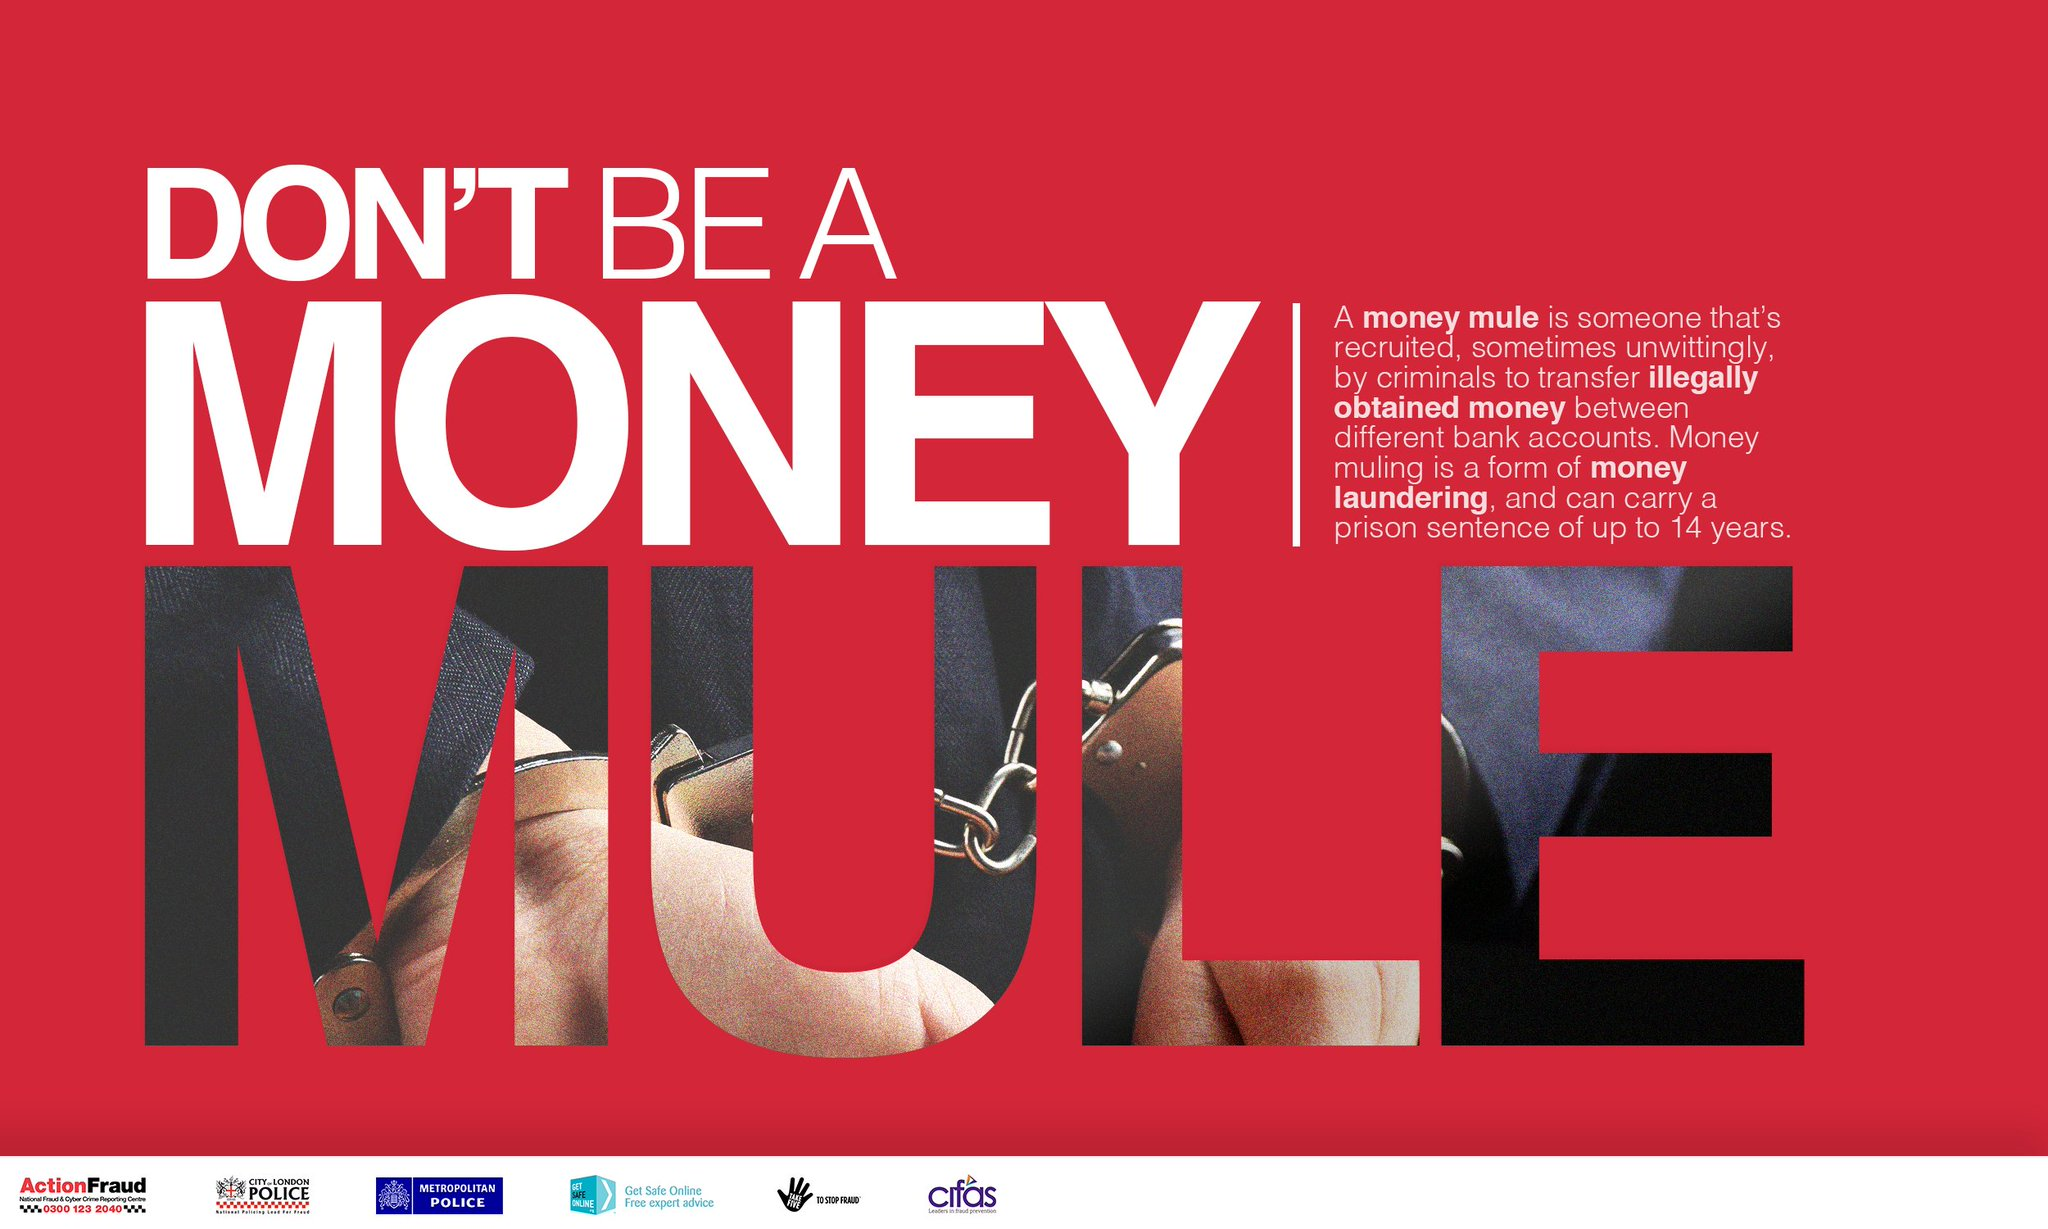 thesis on money laundering in india India essays india's largest contact us return to content essay on organised crime | india includes transnational crime like money laundering.